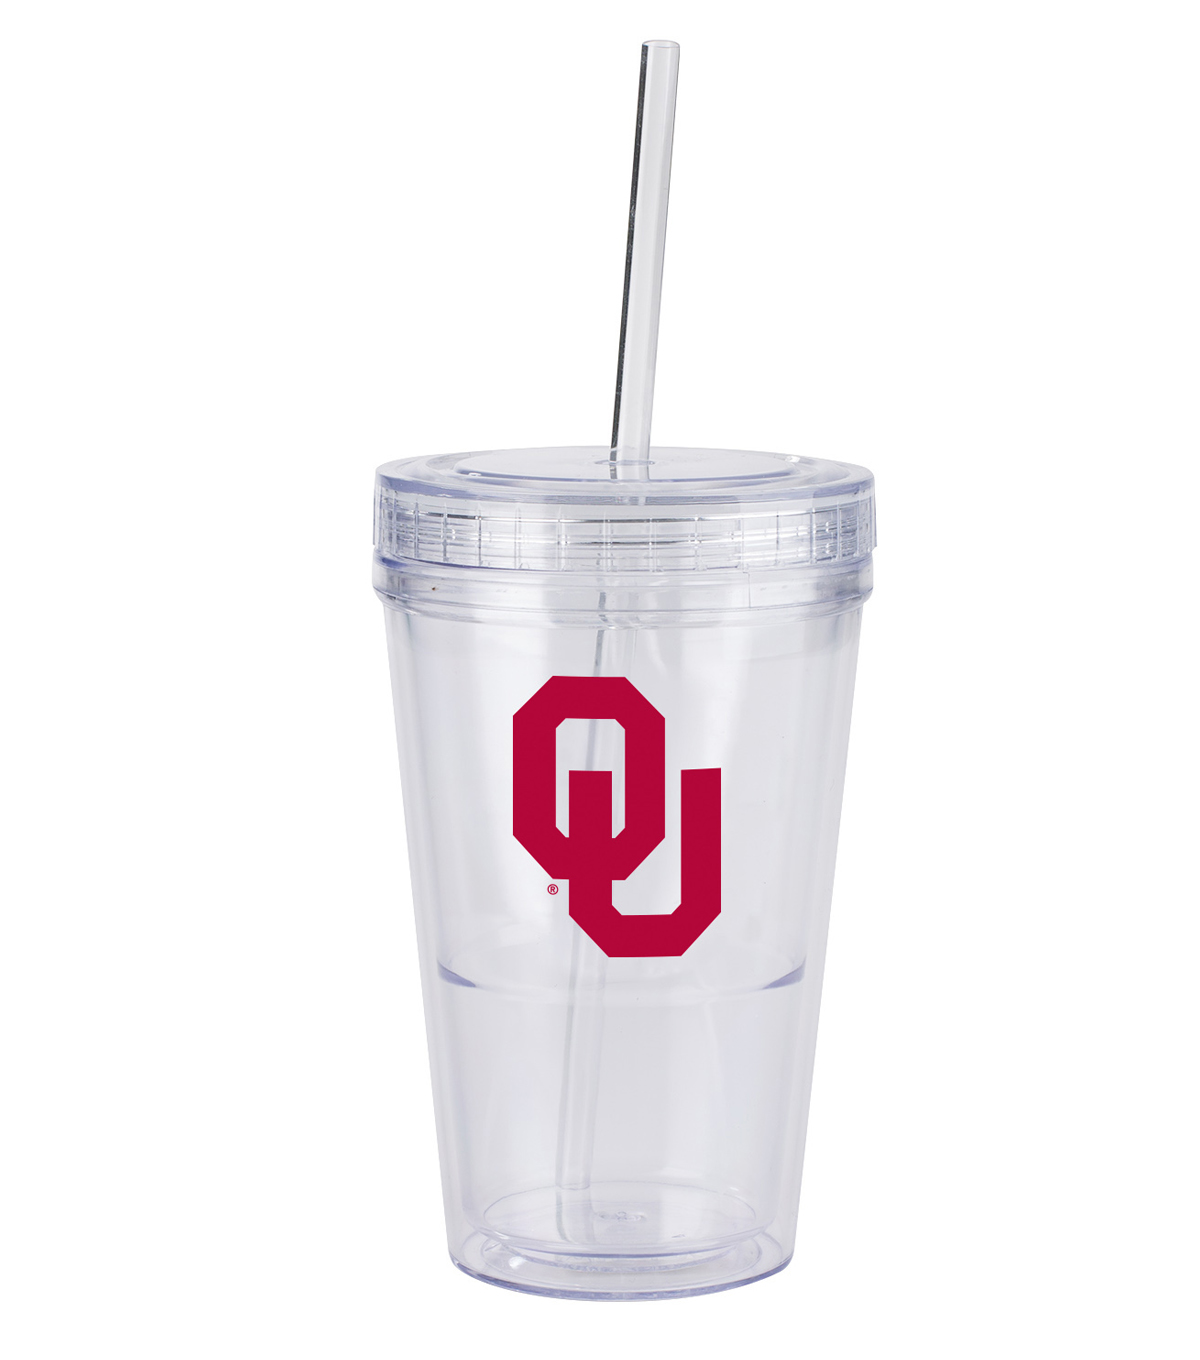 University of Oklahoma 16oz Cup